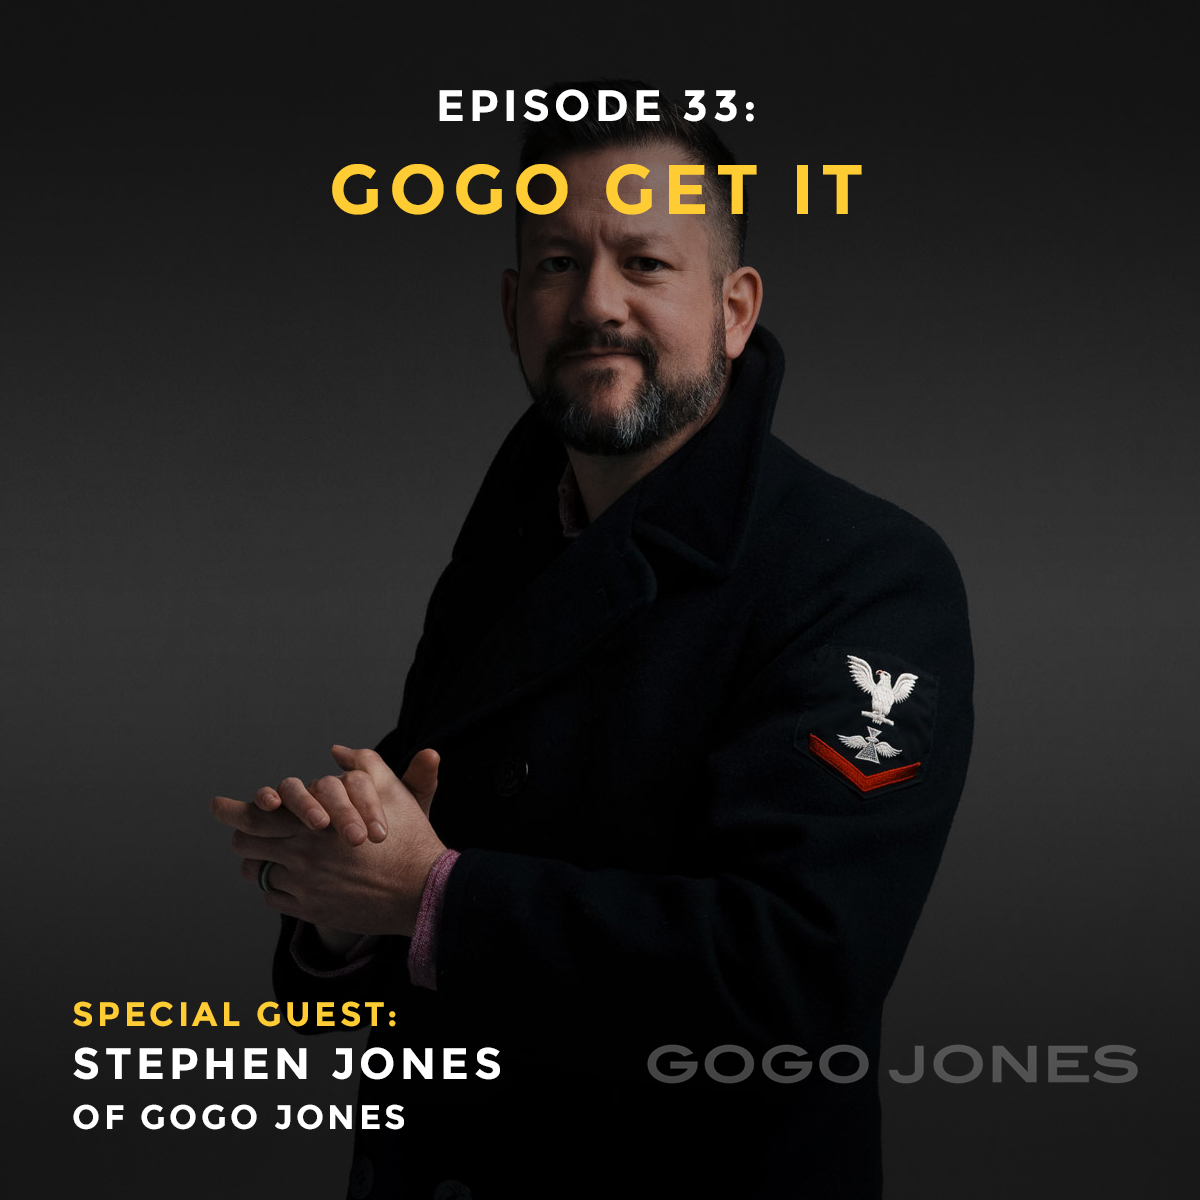 Podcast interview with Stephen Jones, designer, branding guy from Nashville, Tennessee